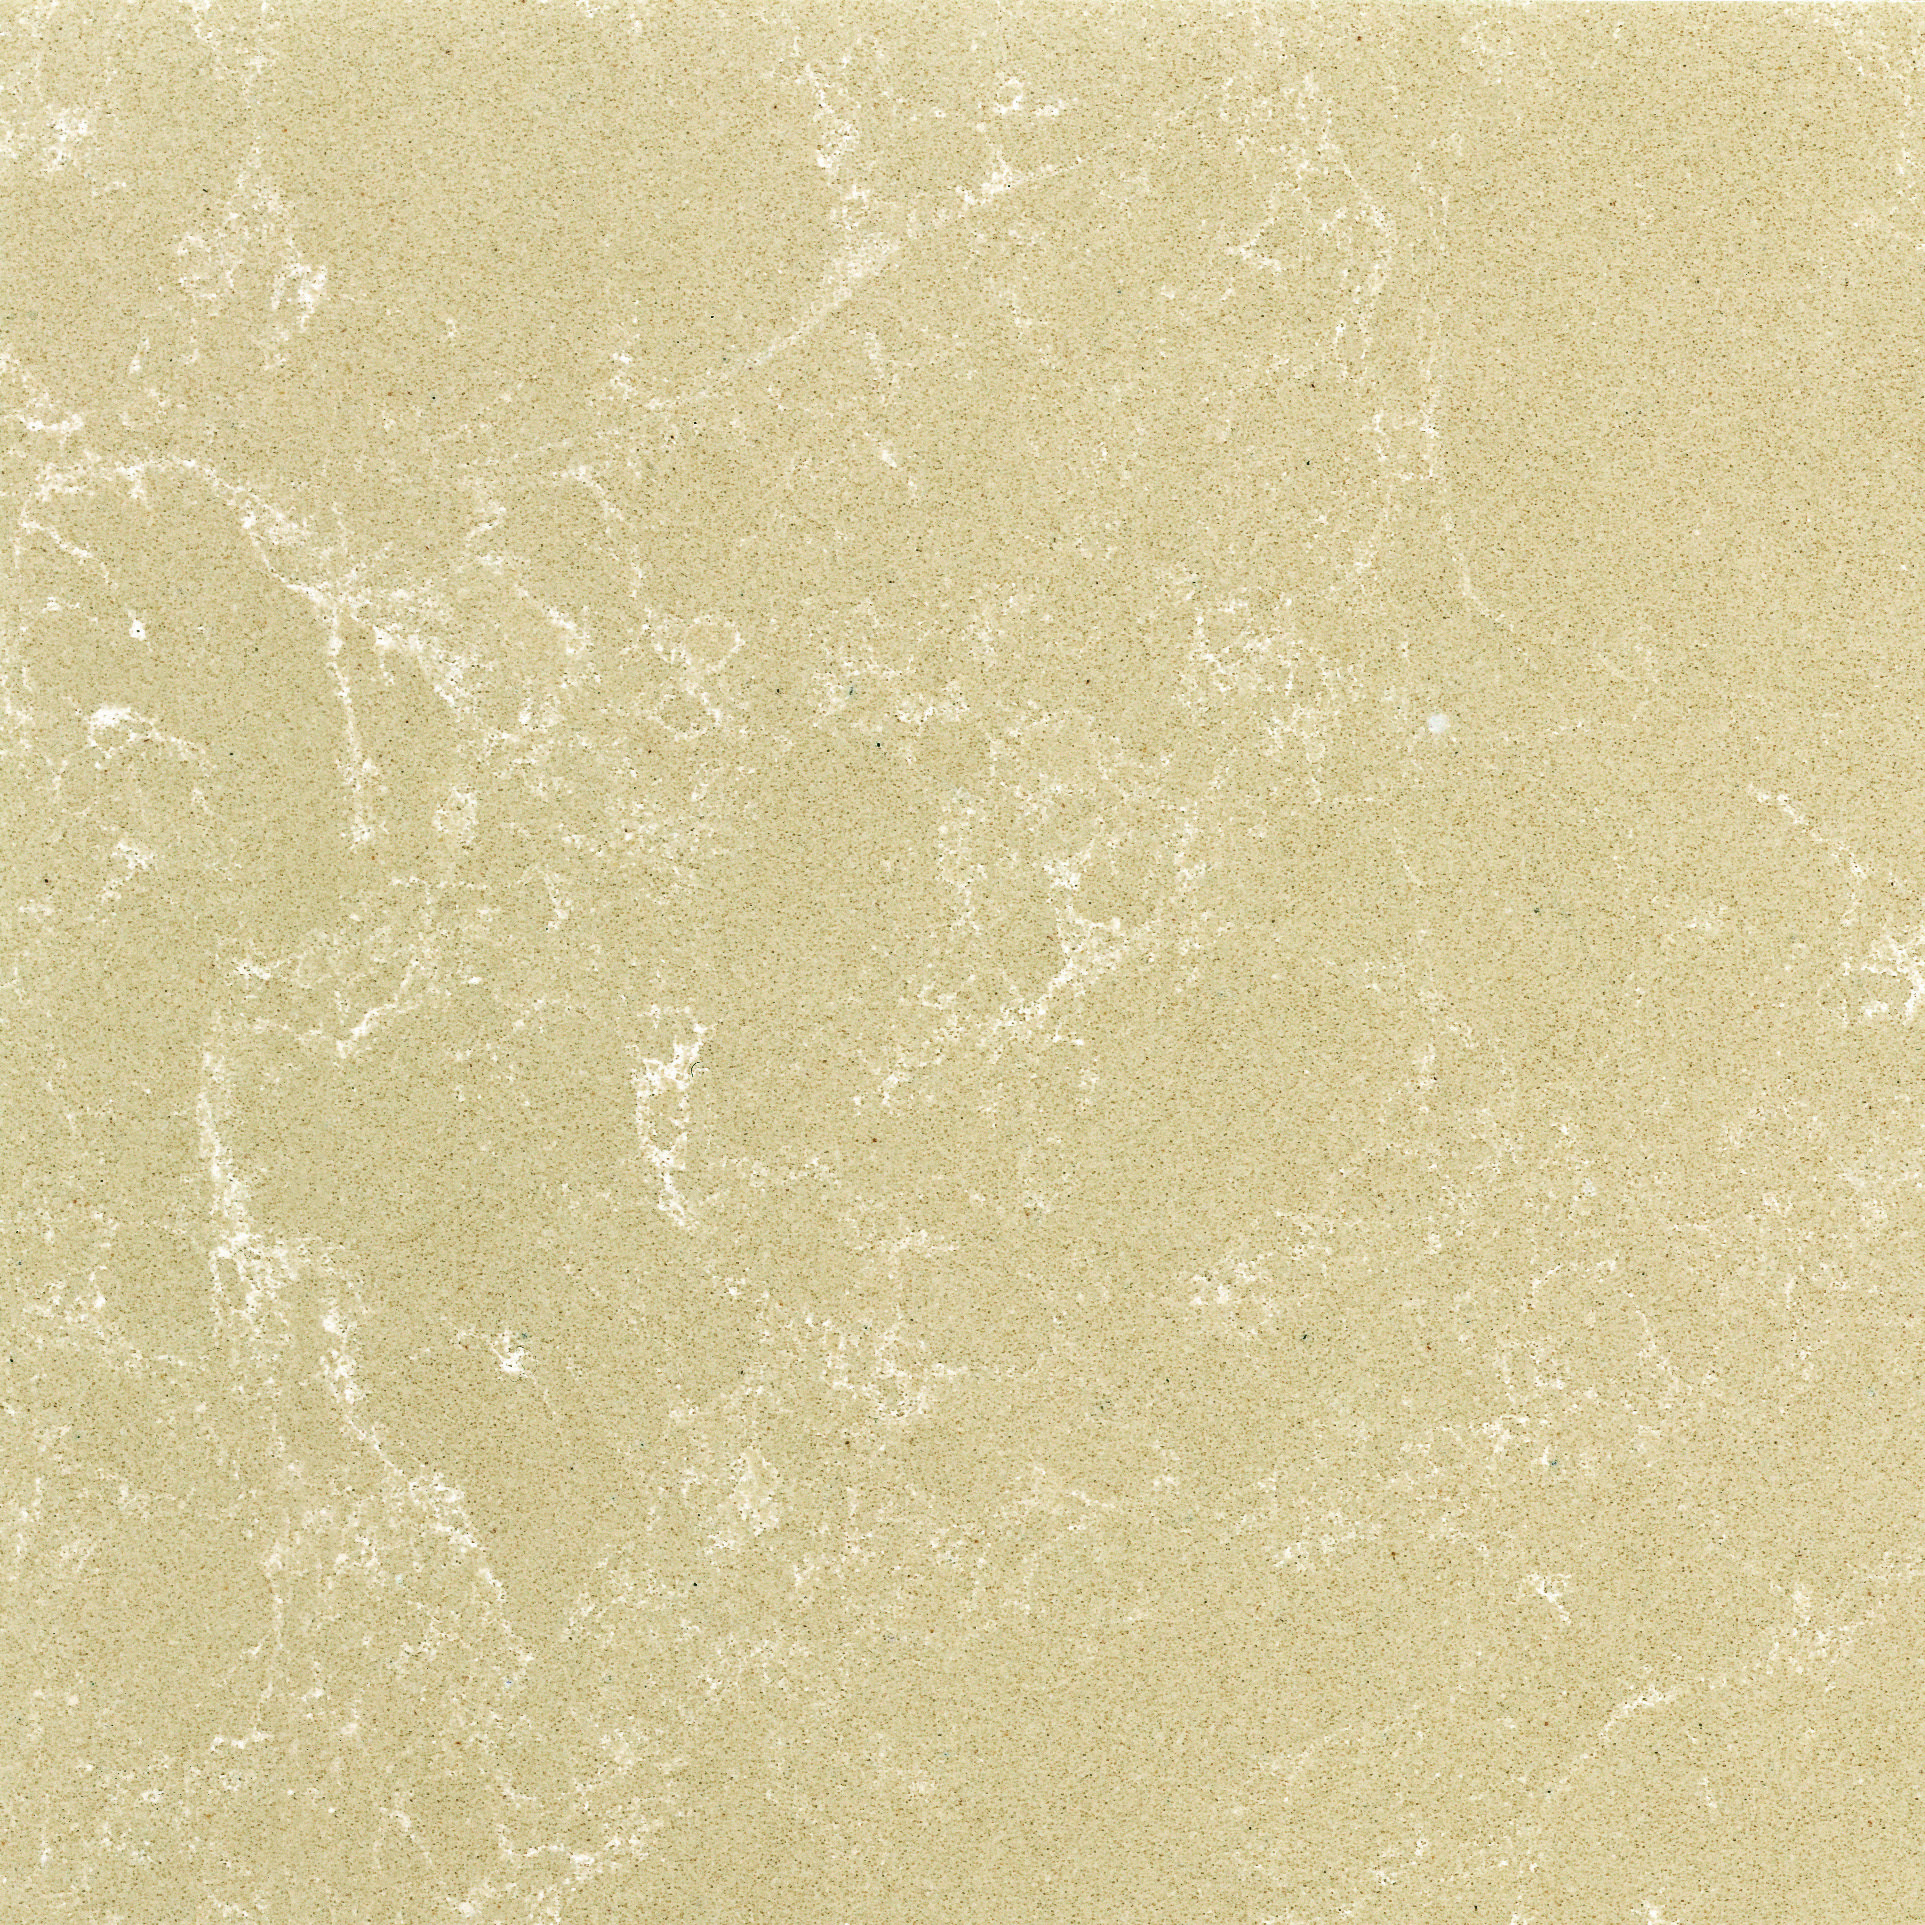 Giotto Micromarble